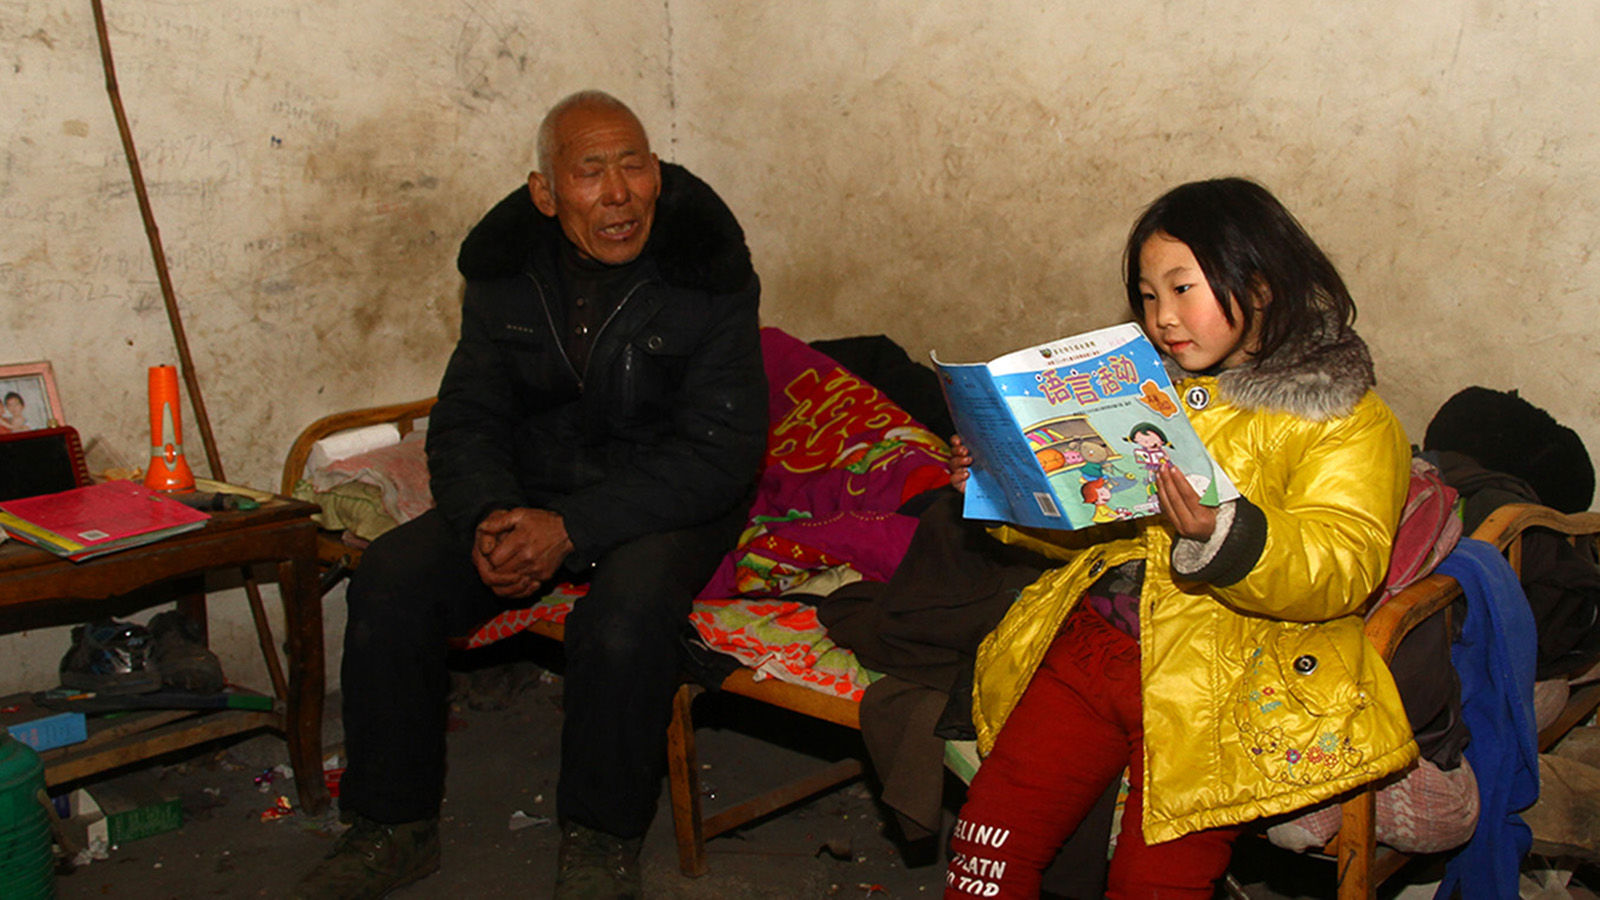 Before dinner, Yutong practiced reading aloud to her grandpa. Illiterate, just like Grandma, Grandpa is always an enthusiastic audience.